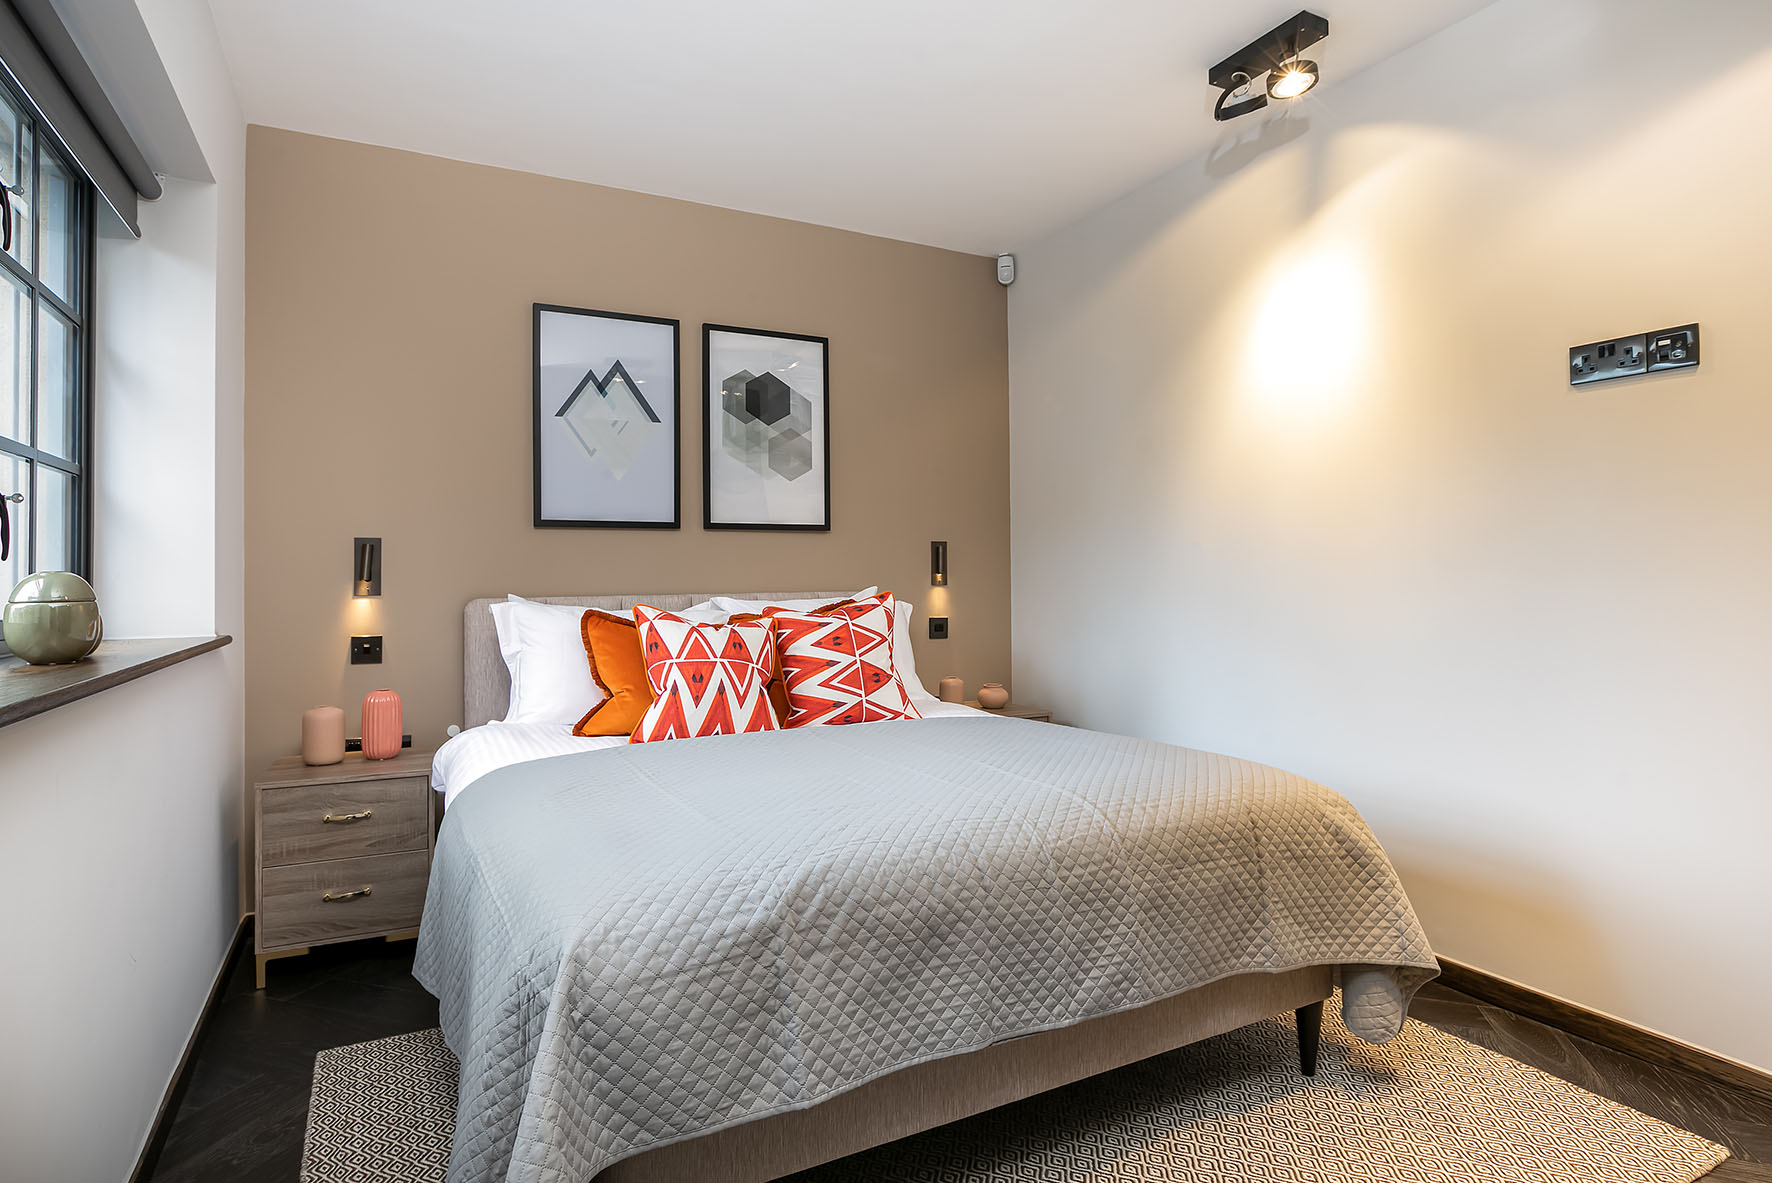 Lovelydays luxury service apartment rental - London - Soho - Noel Street VII - Lovelysuite - 1 bedrooms - 1 bathrooms - Queen bed - 21a5aef2e0e8 - Lovelydays